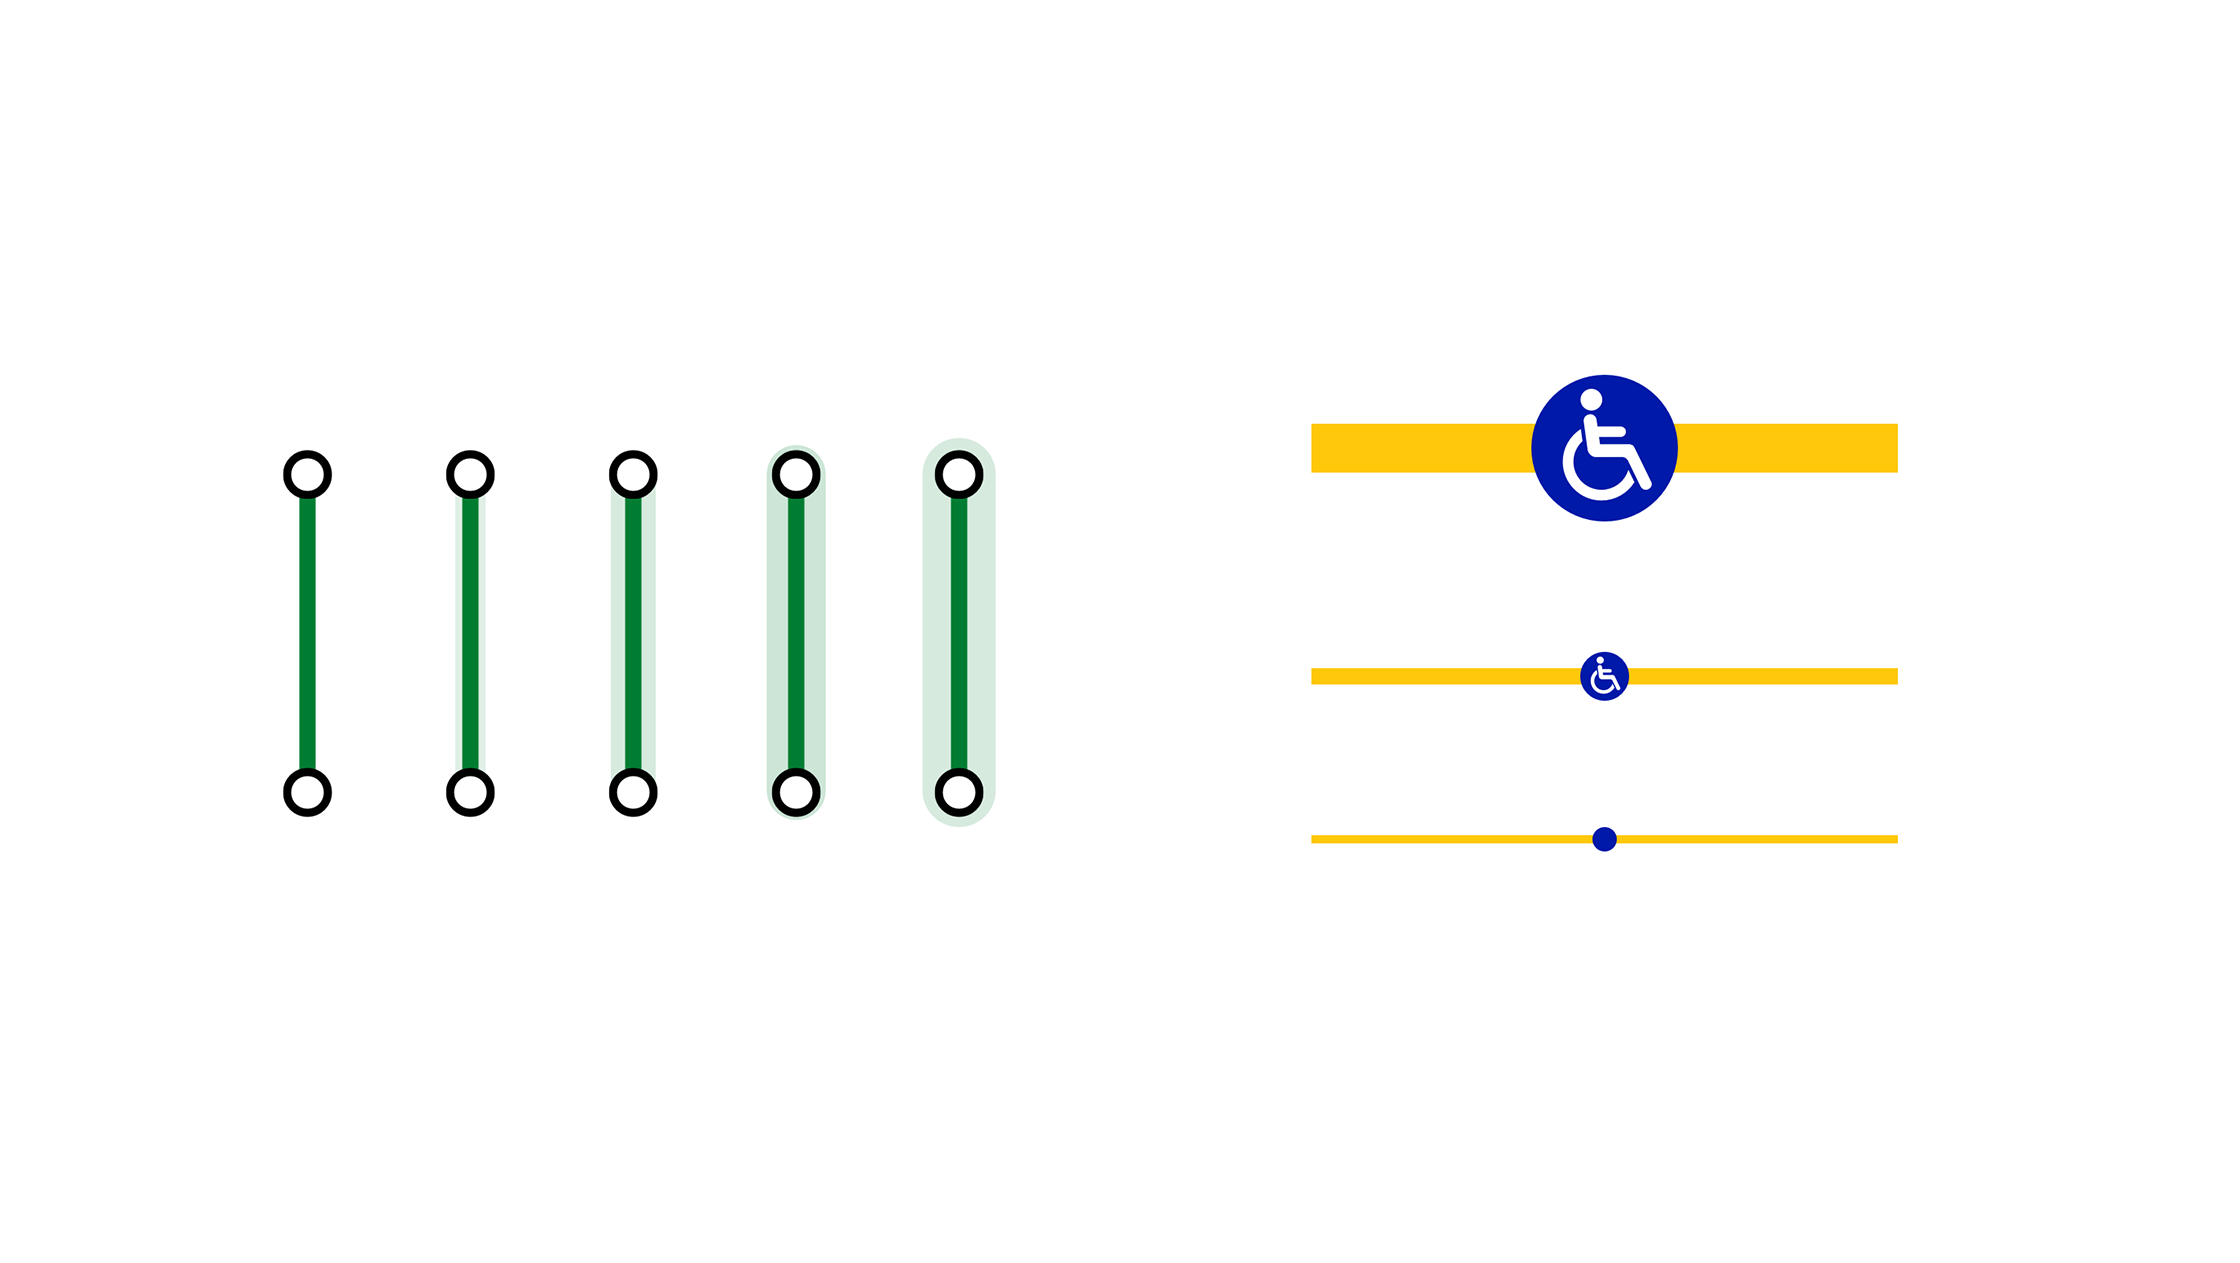 An image of showing live disruptions on Tube line segments and icons changing when zooming into the map